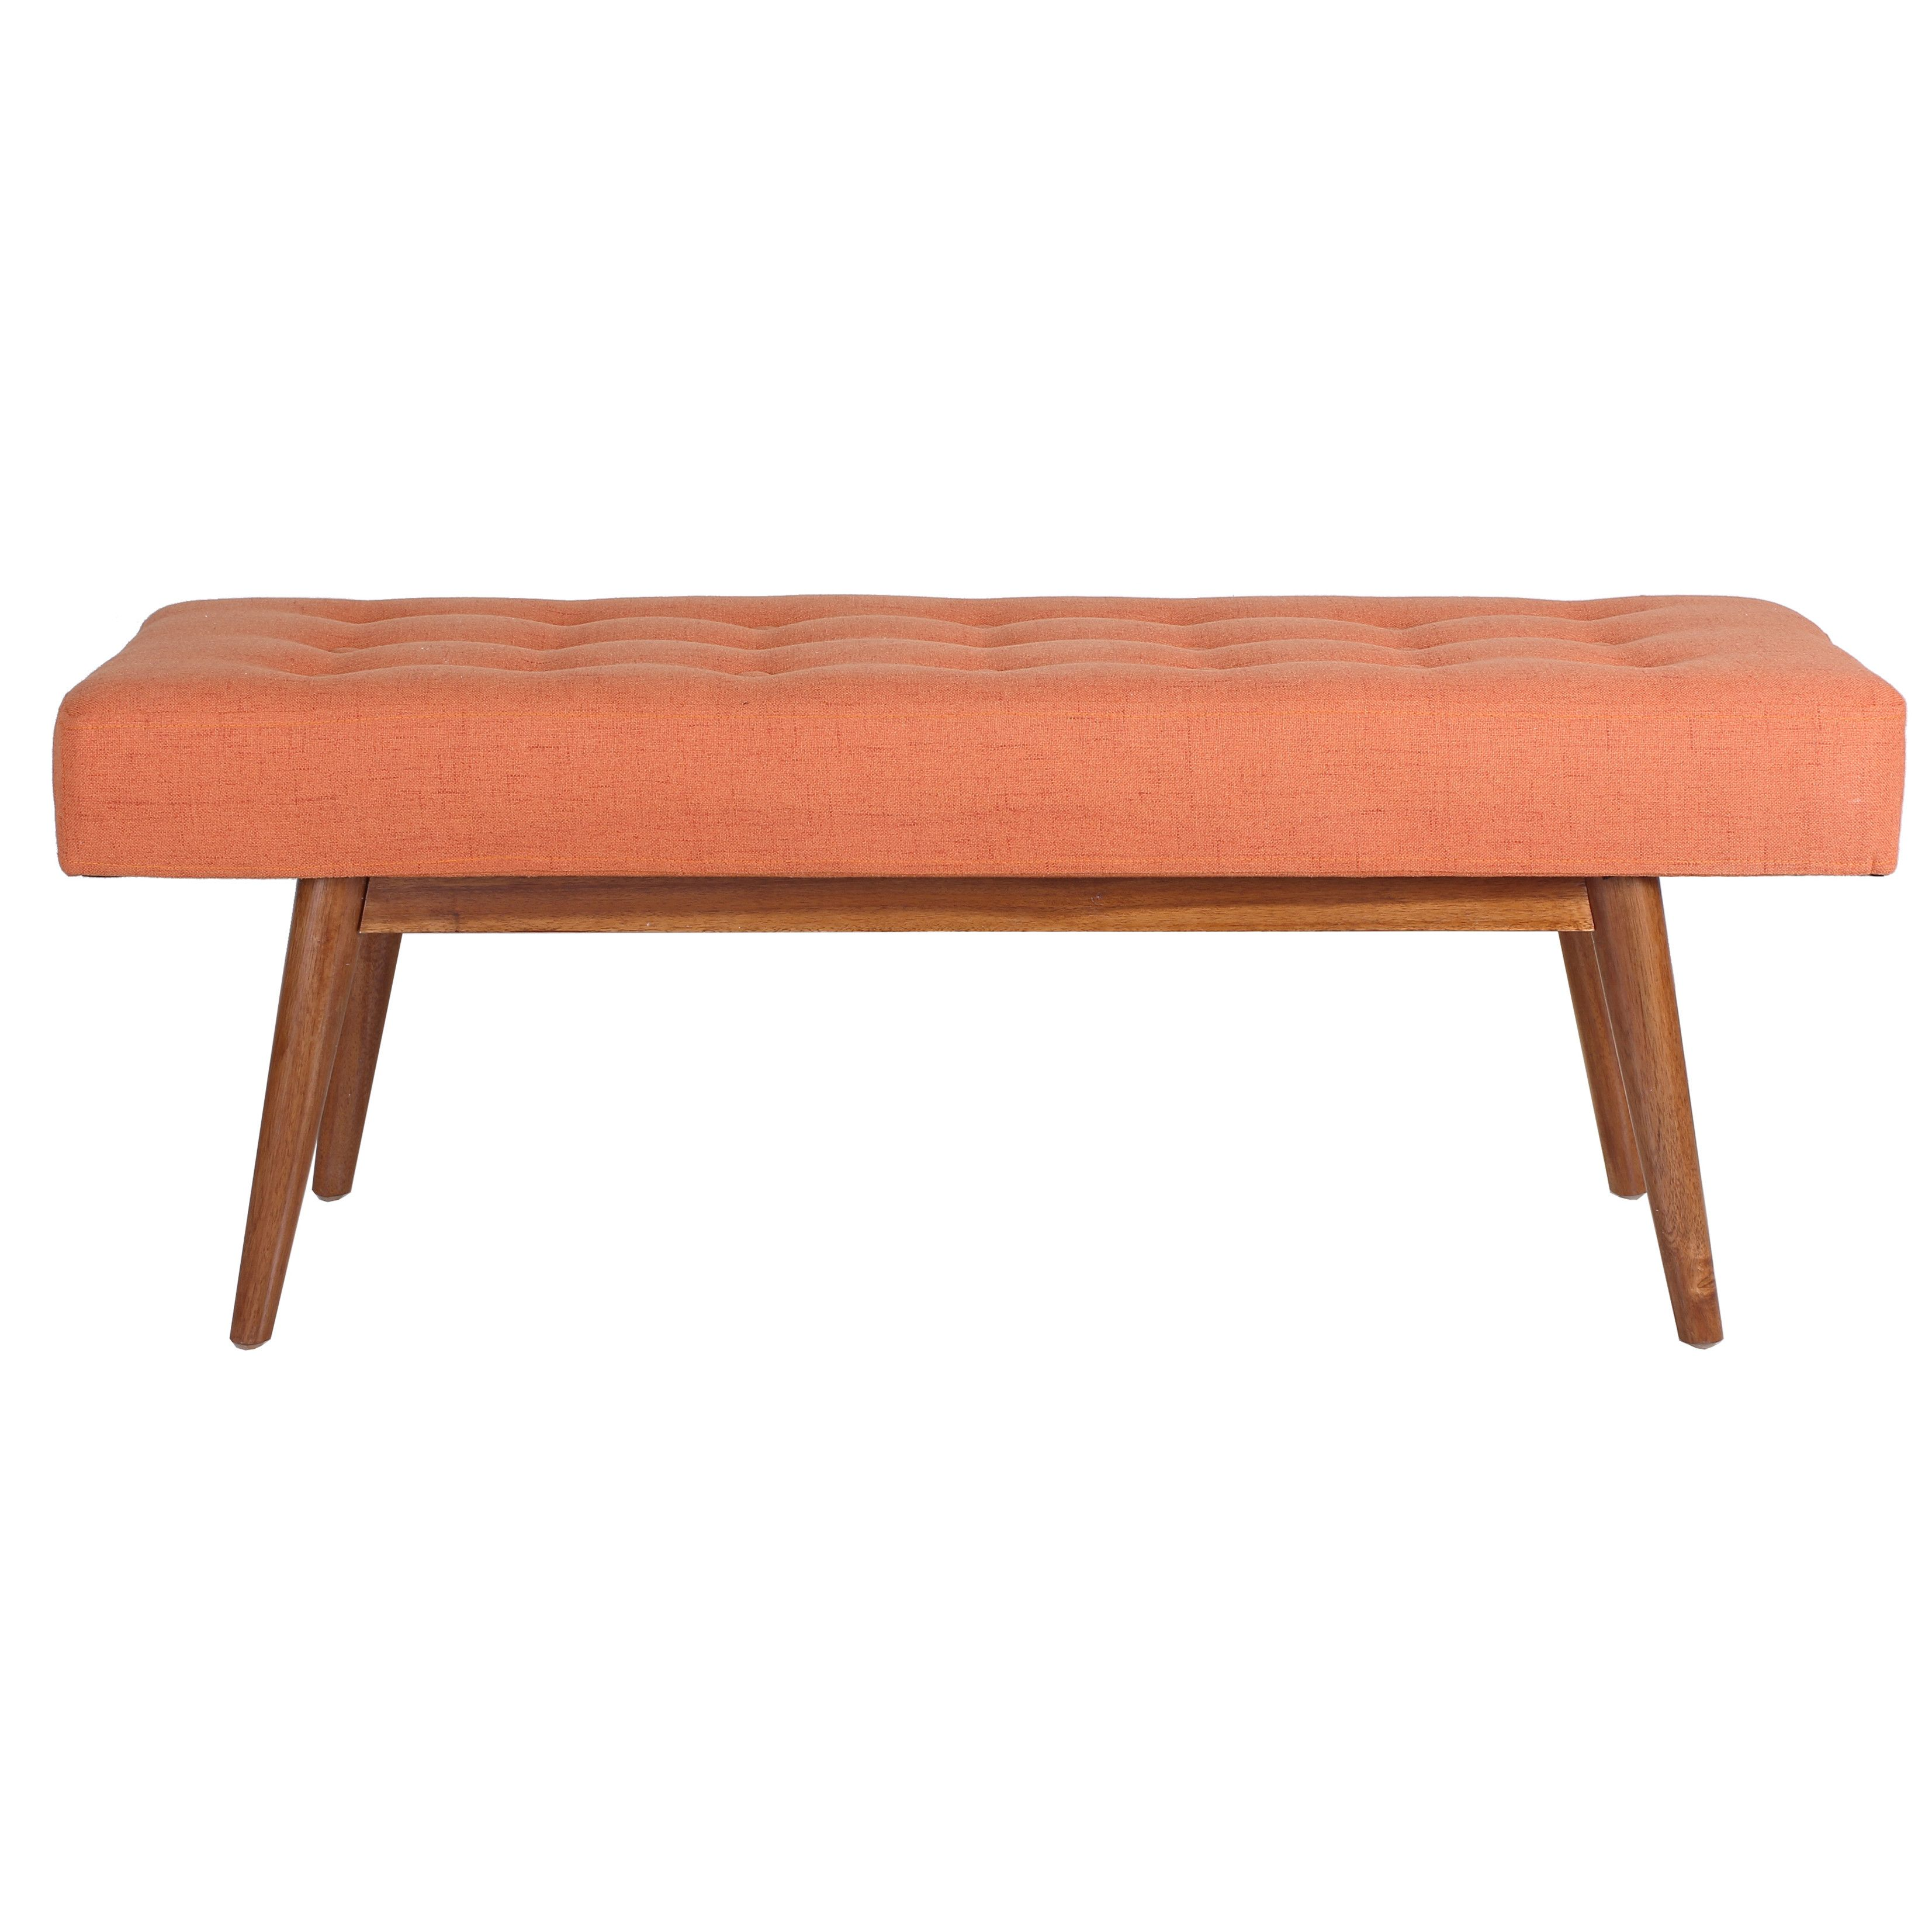 Porthos Home Etheline Upholstered Bedroom Bench gets free shipping to your business from Wayfair Supply - Great deals on all office products with an amazing selection to choose from.